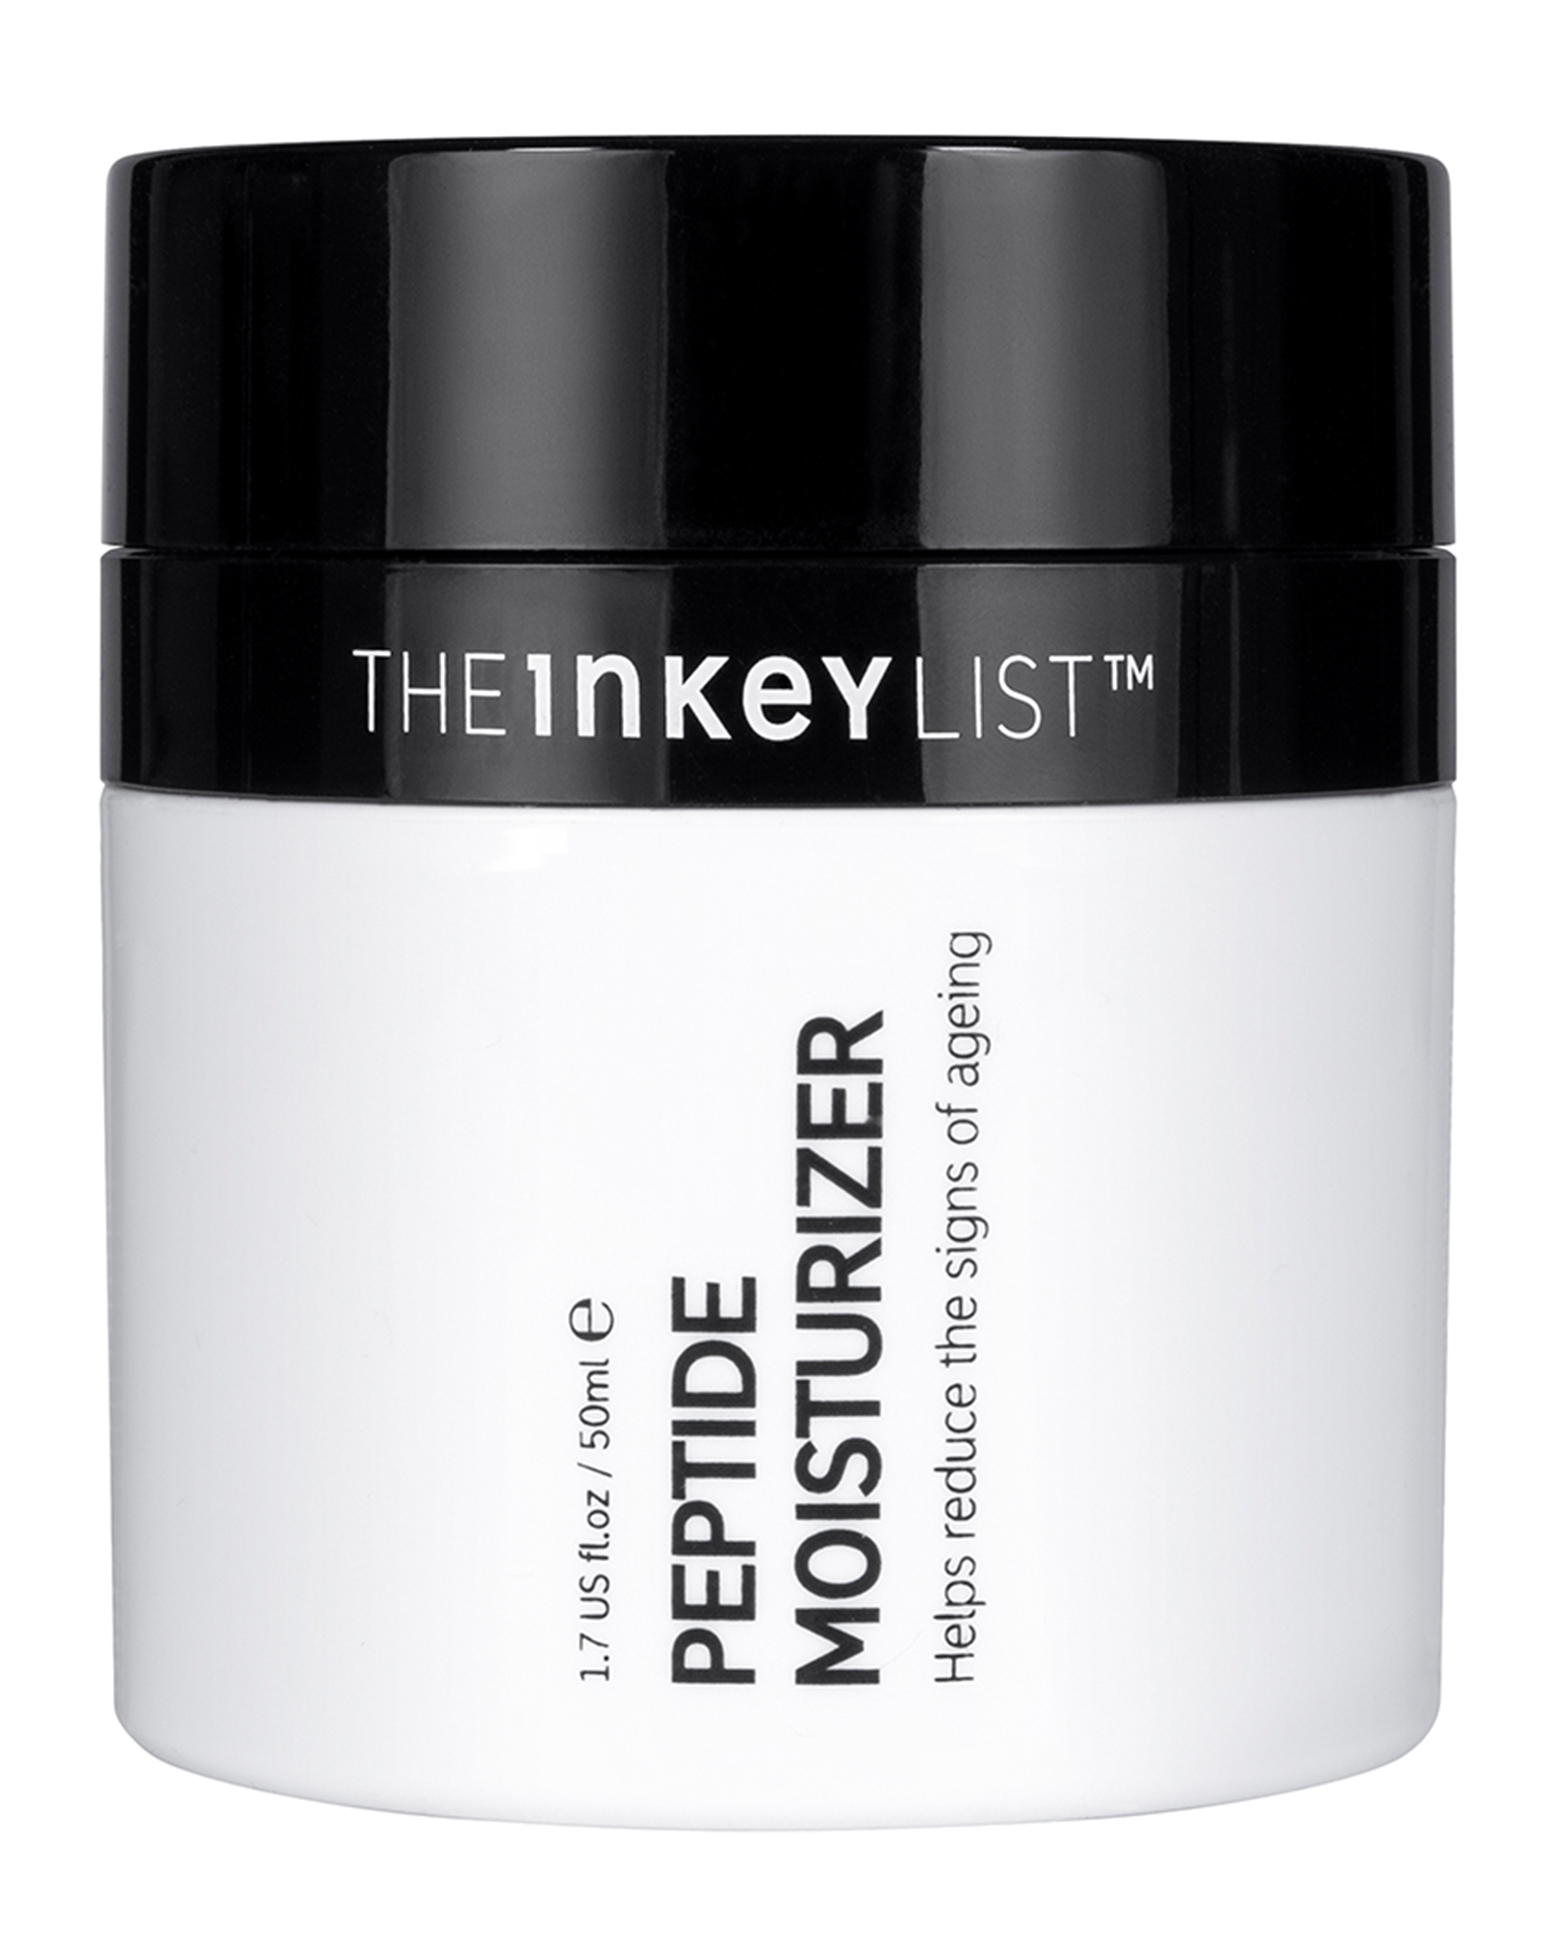 kem-duong-am-the-inkey-list-peptide-moisturizer-review-thanh-phan-gia-cong-dung